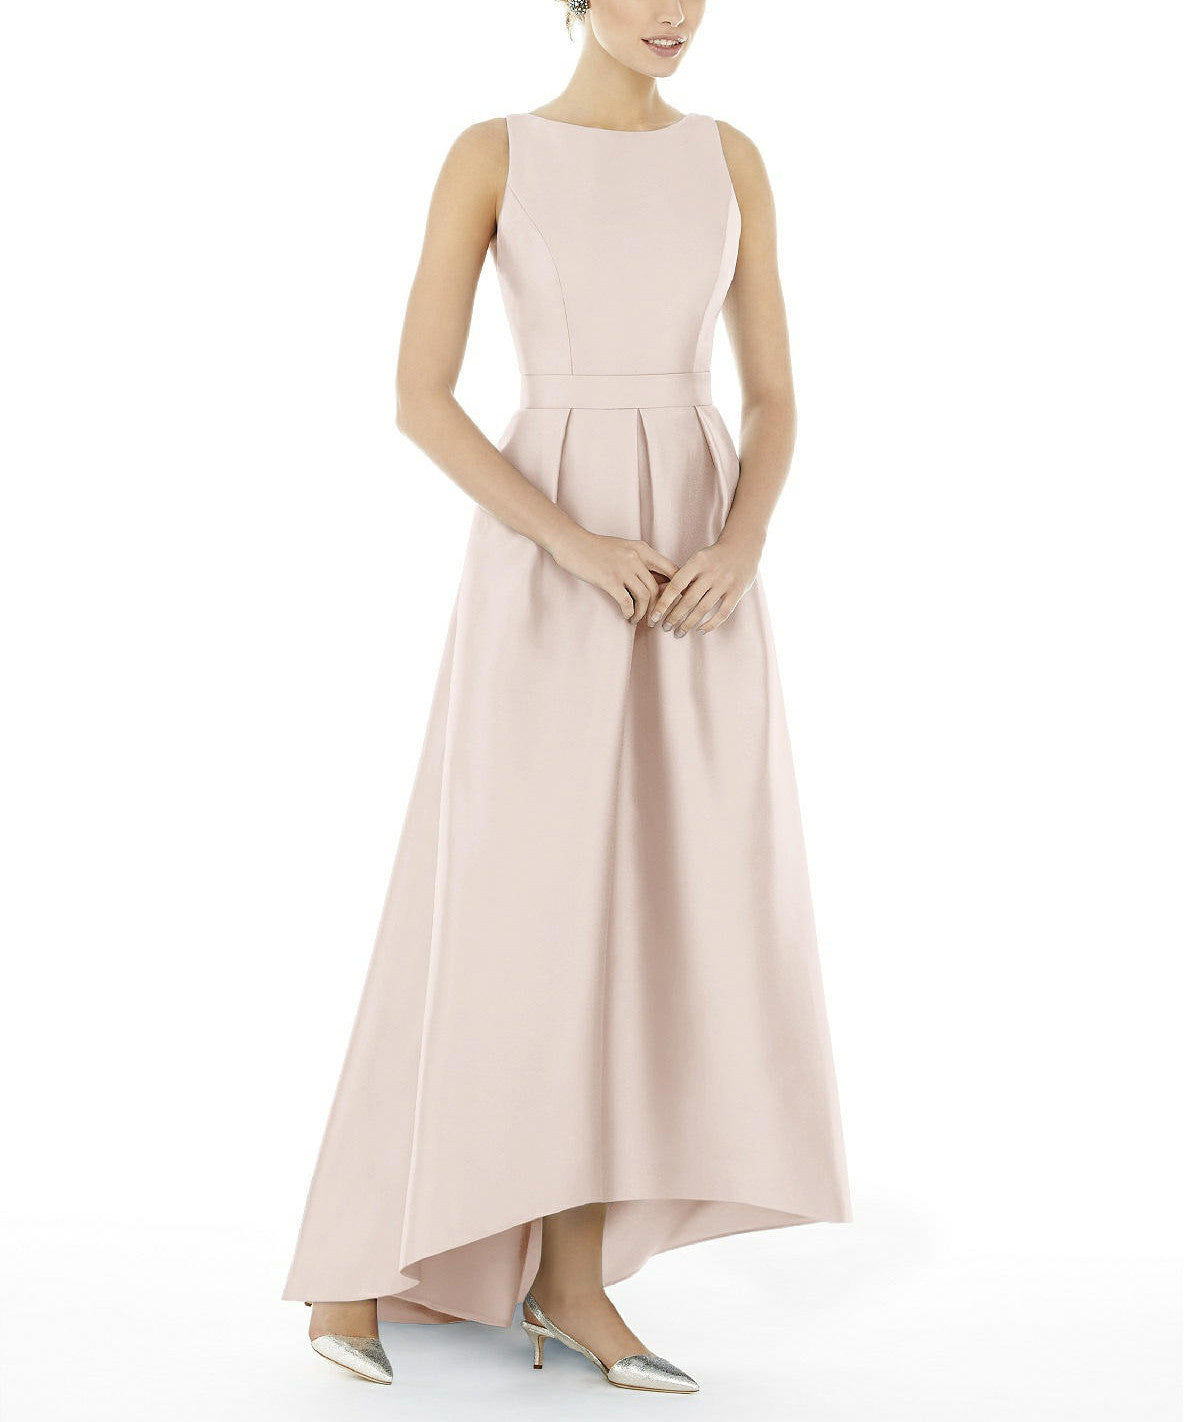 Alfred sung style d706 bridesmaid dress brideside alfred sung style d706 ombrellifo Choice Image